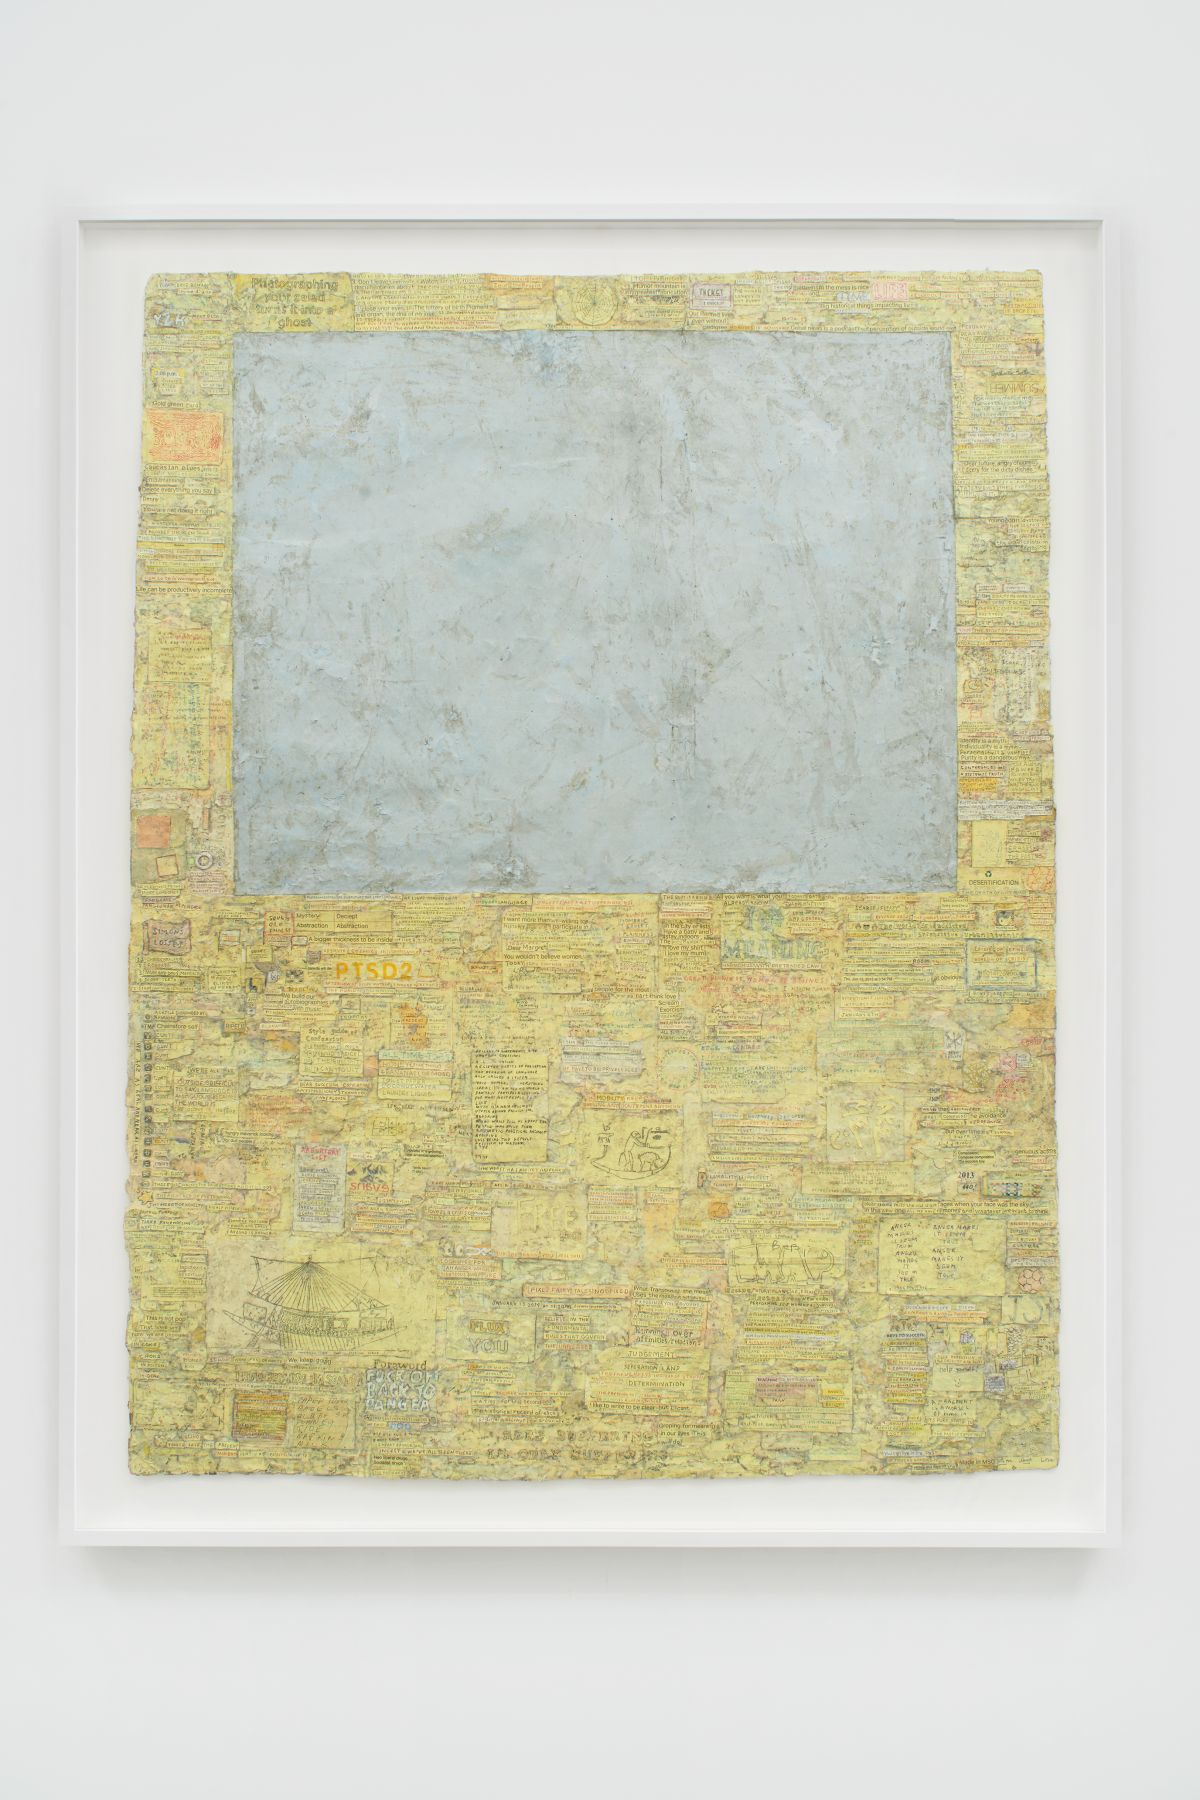 Grey square set into pale yellow field of text handwritten on strips of paper